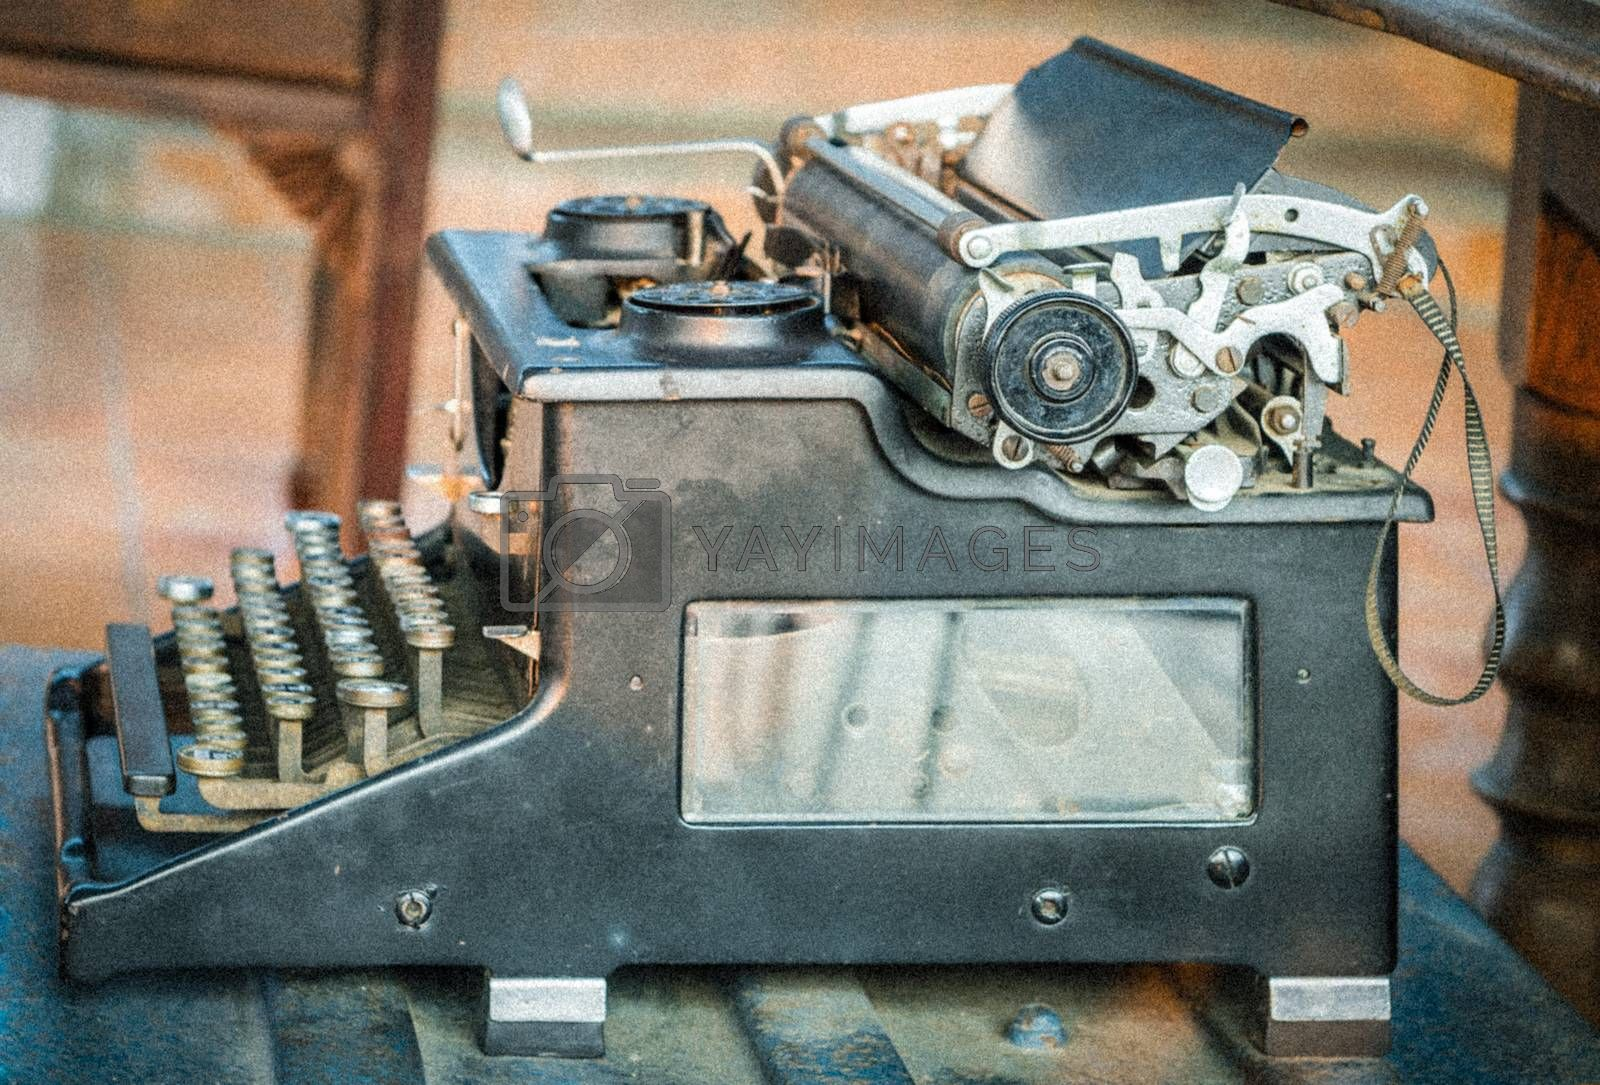 Old typewriter with vintage tone -adding grain and noise